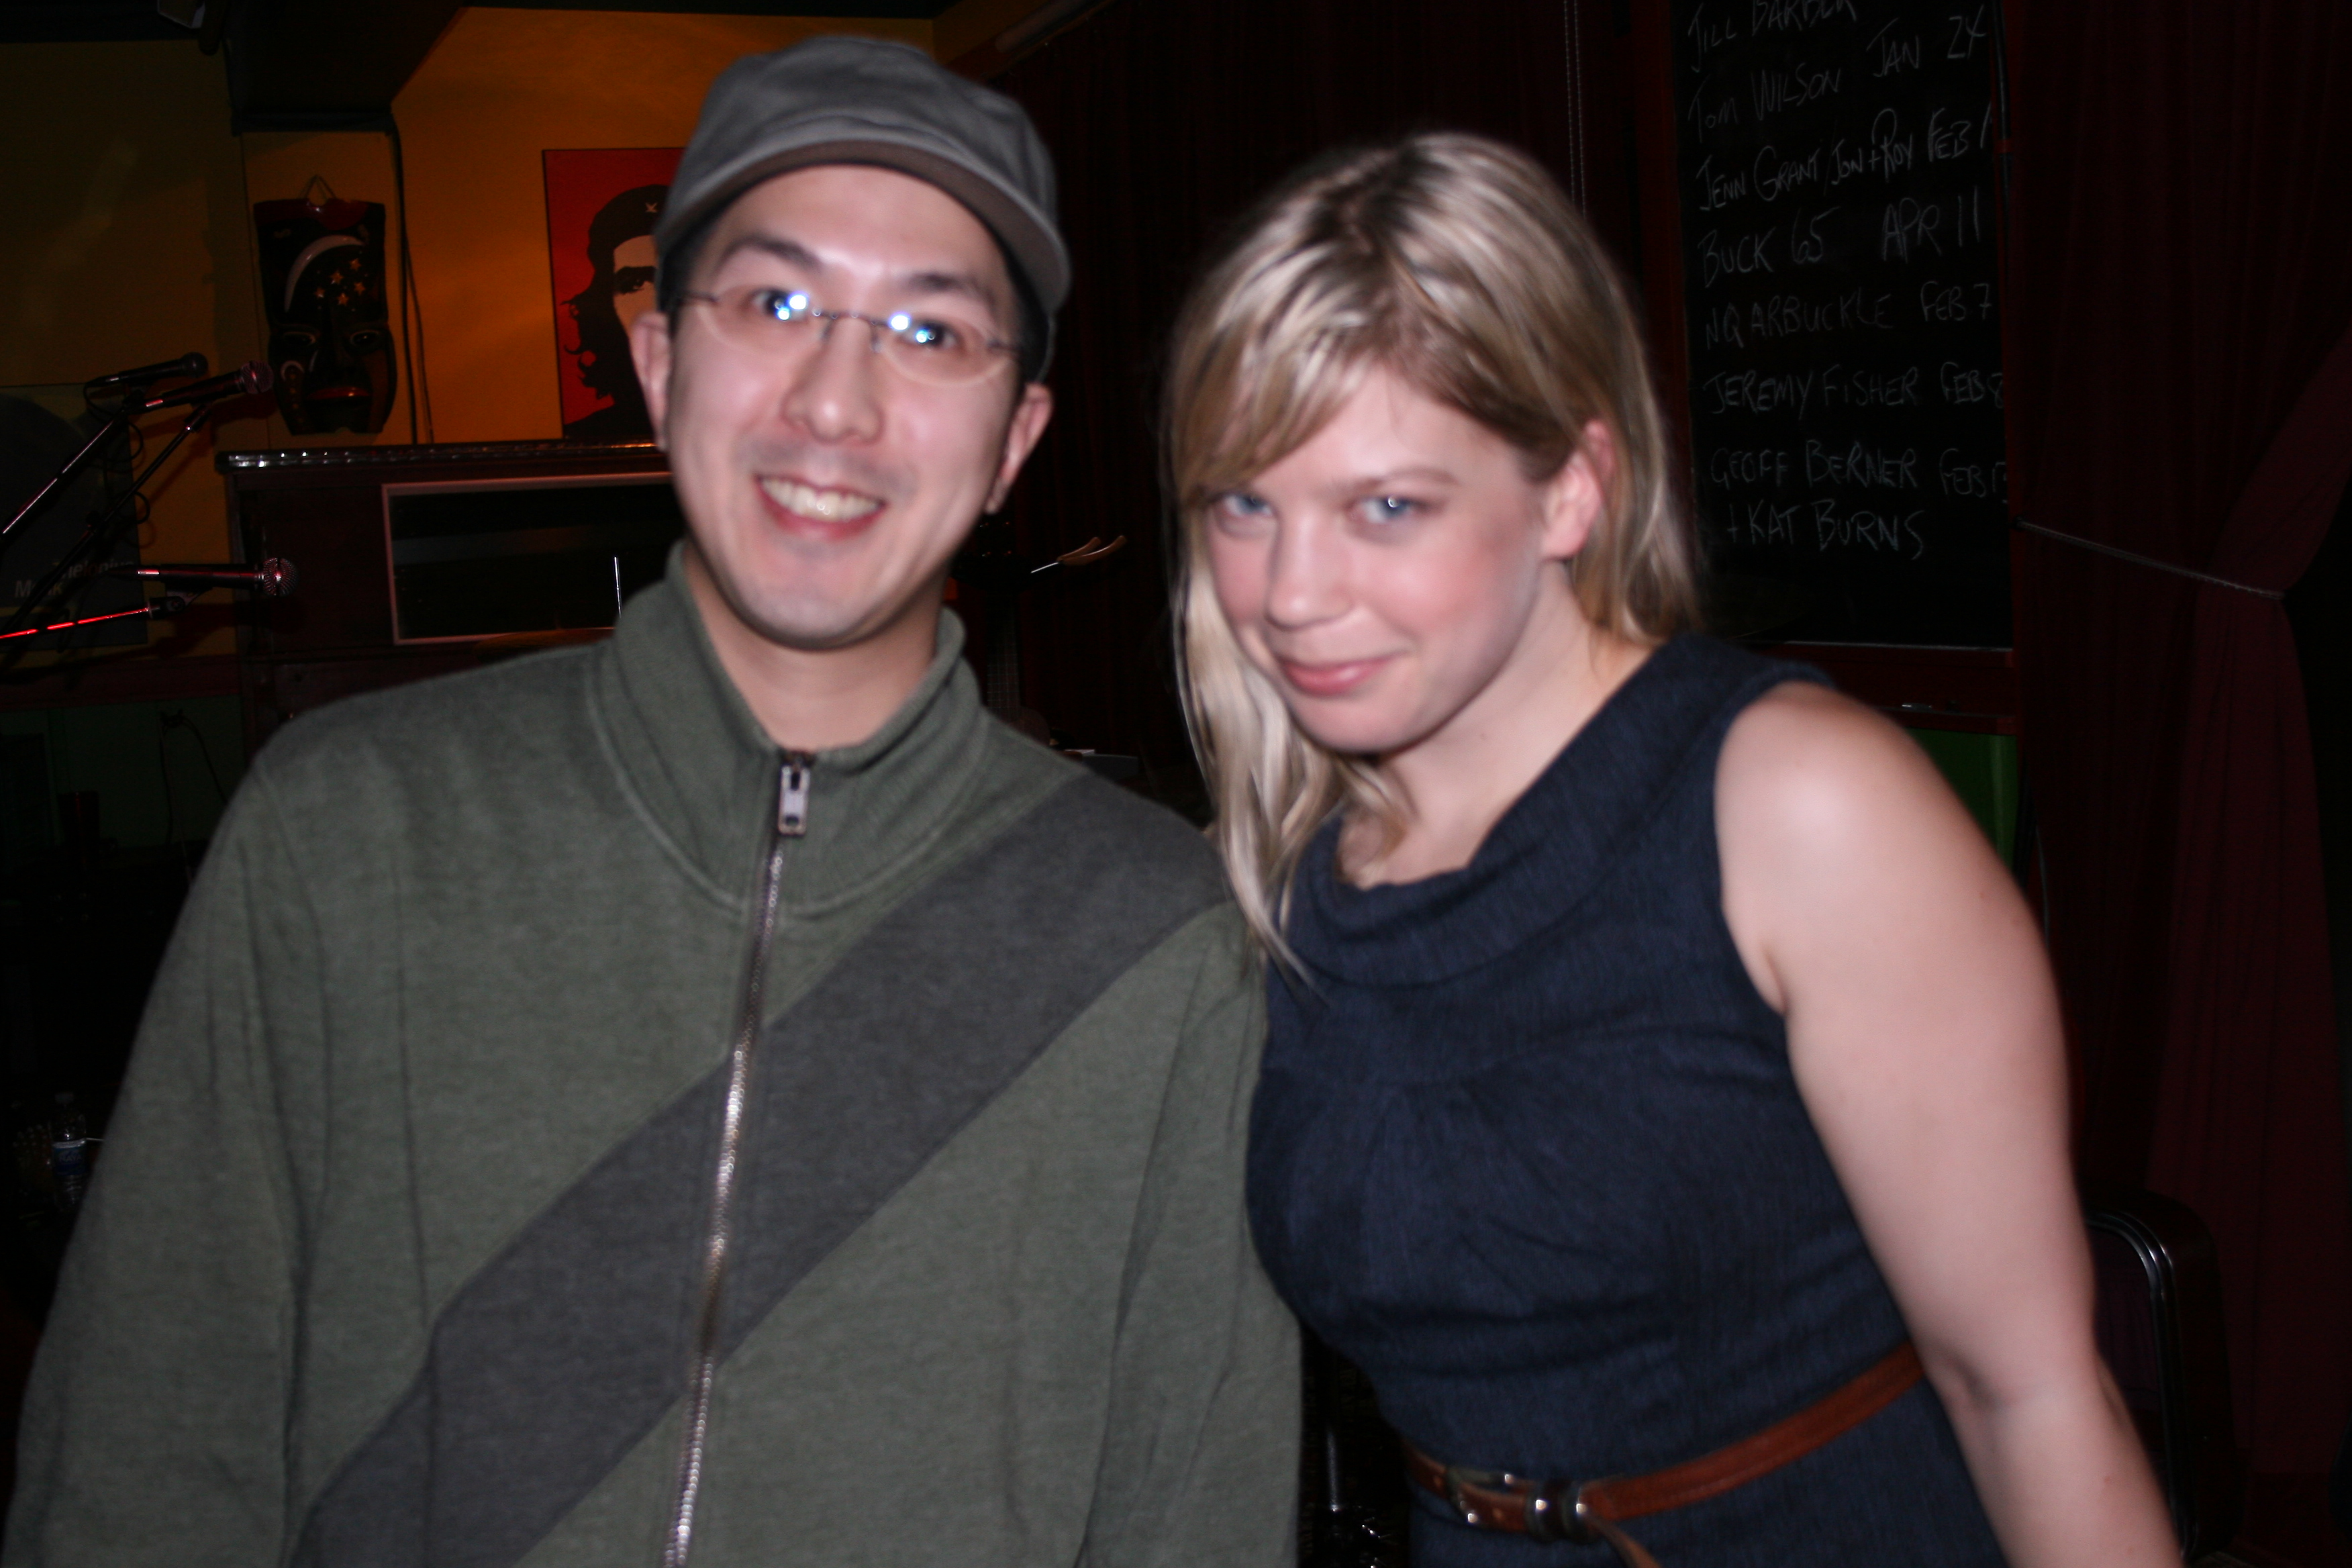 With Basia Bulat at The Black Sheep Inn on January 23, 2009